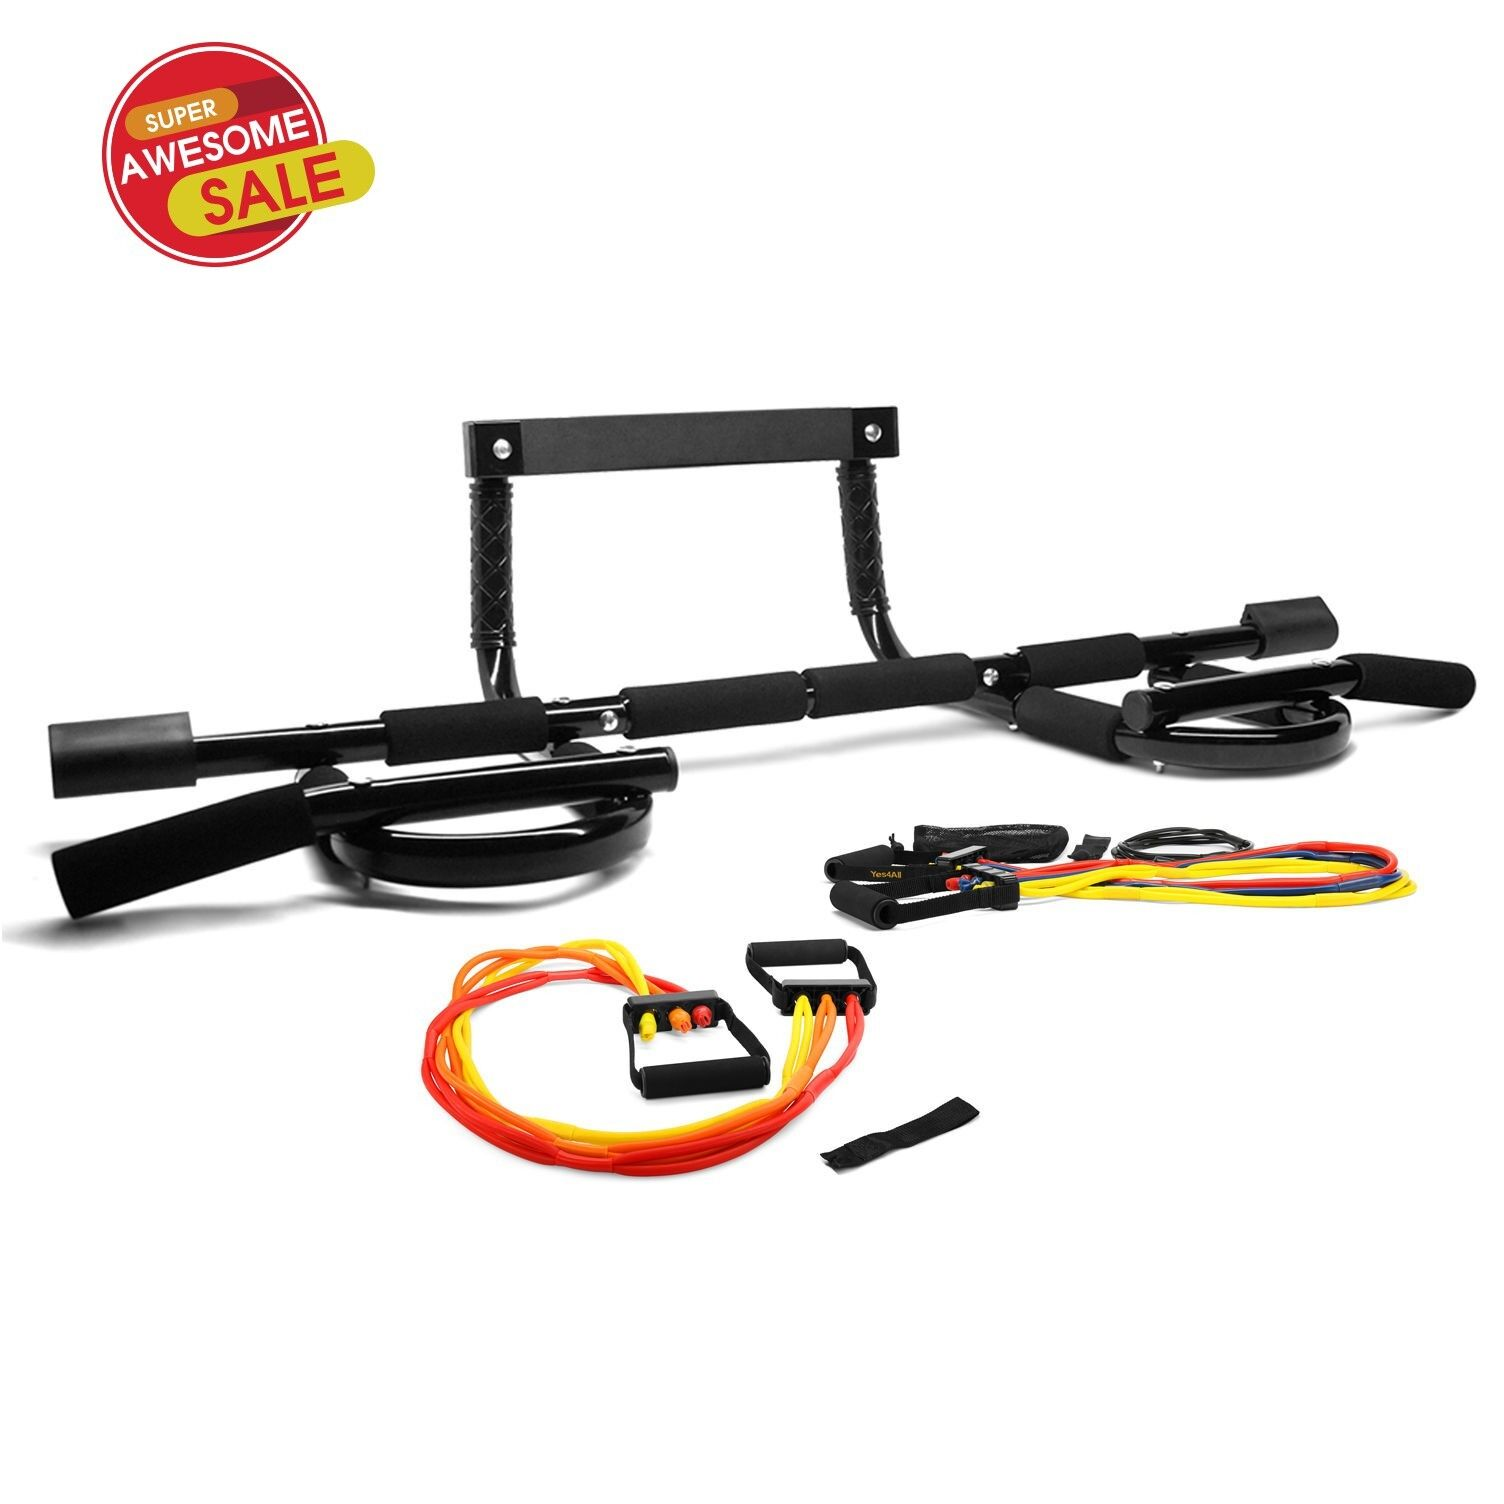 CXP Chin Pull Up Bar Doorway Home Fitness + 7 X-Safe